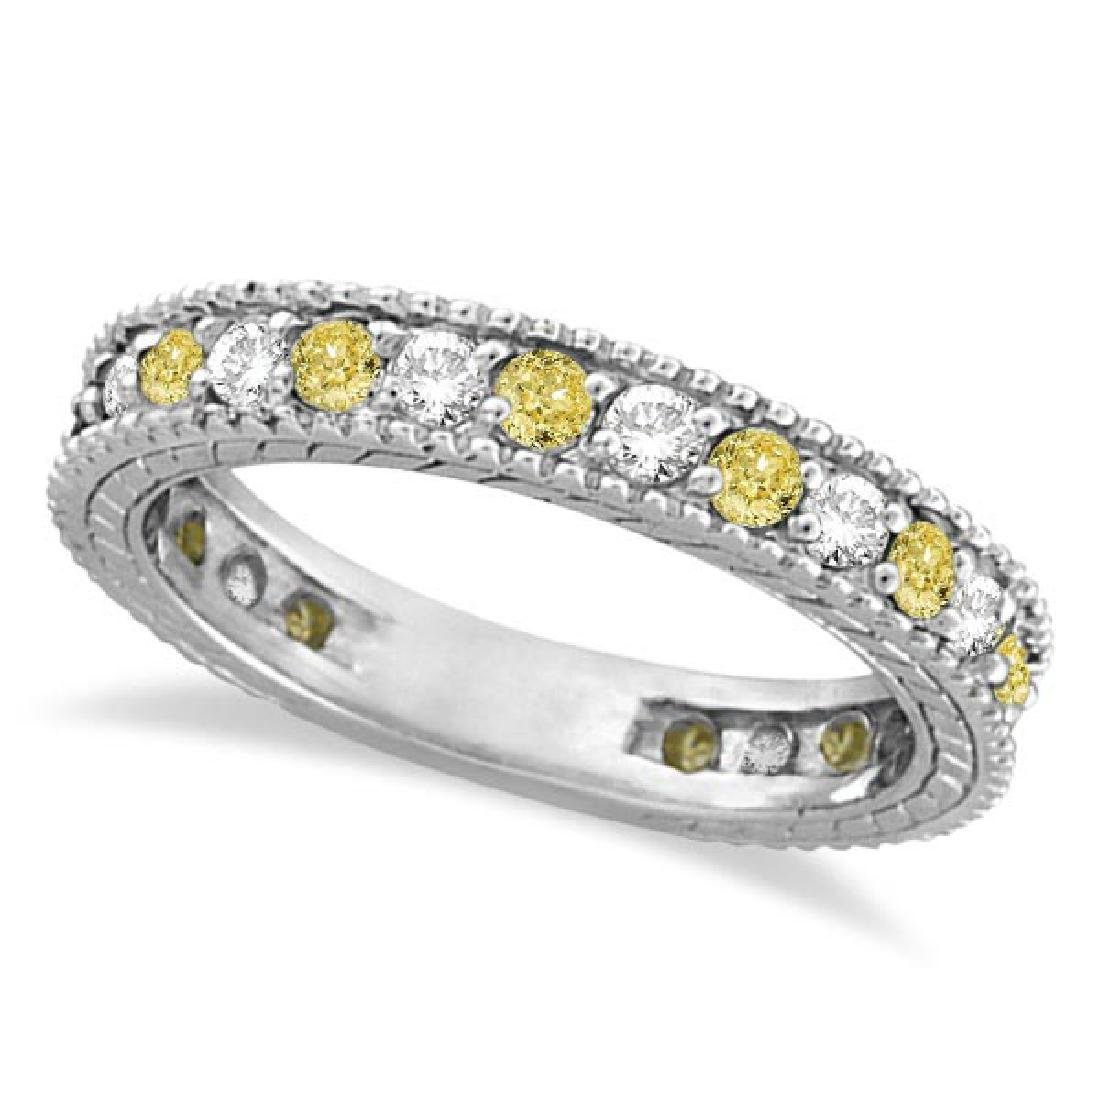 Fancy Yellow Canary and White Diamond Eternity Ring 14k